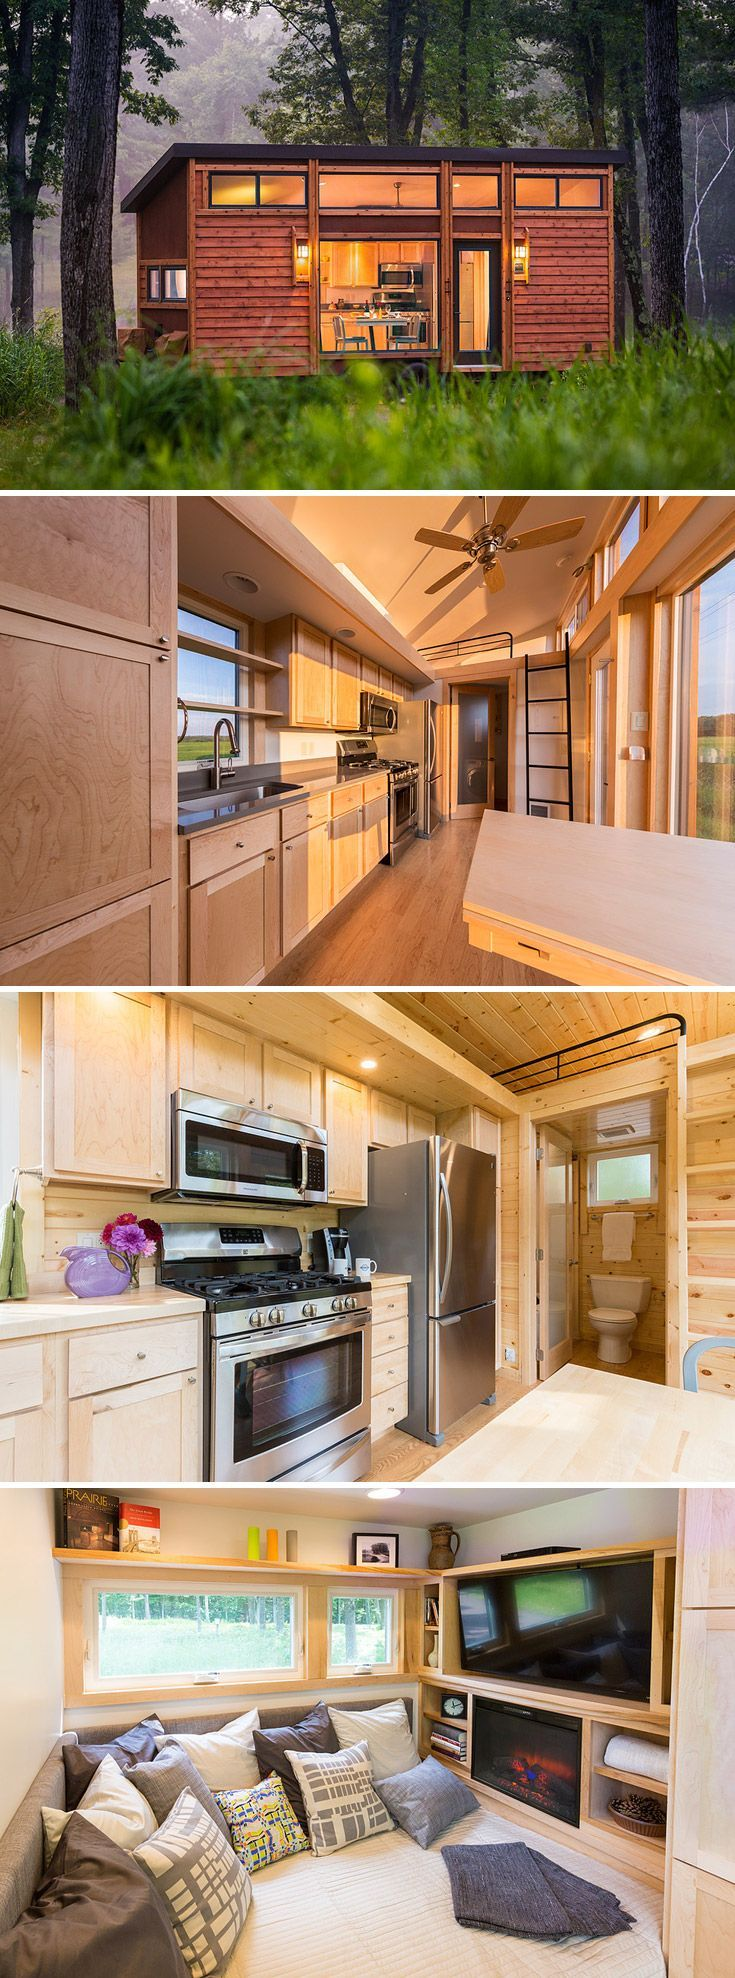 cool A 269 sq.ft. tiny house on wheels with cedar lap siding and steel accents. Inclu... by http://www.dana-home-decor.xyz/tiny-homes/a-269-sq-ft-tiny-house-on-wheels-with-cedar-lap-siding-and-steel-accents-inclu/